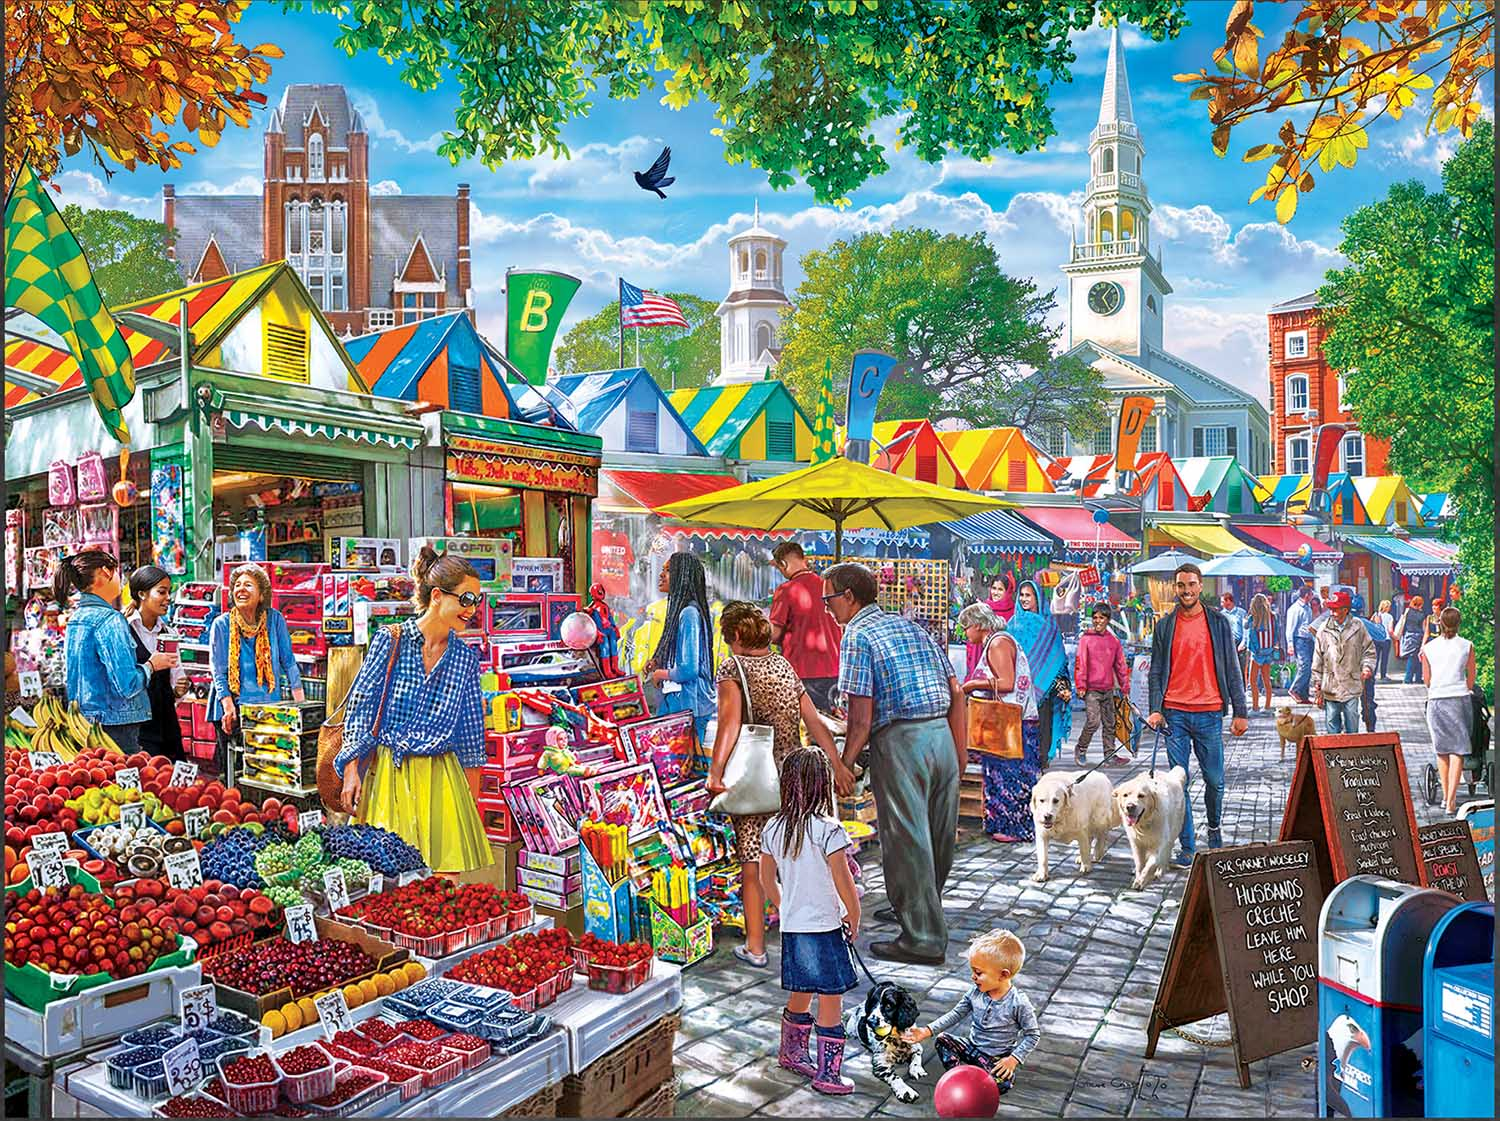 Market Day Afternoon Street Scene Jigsaw Puzzle